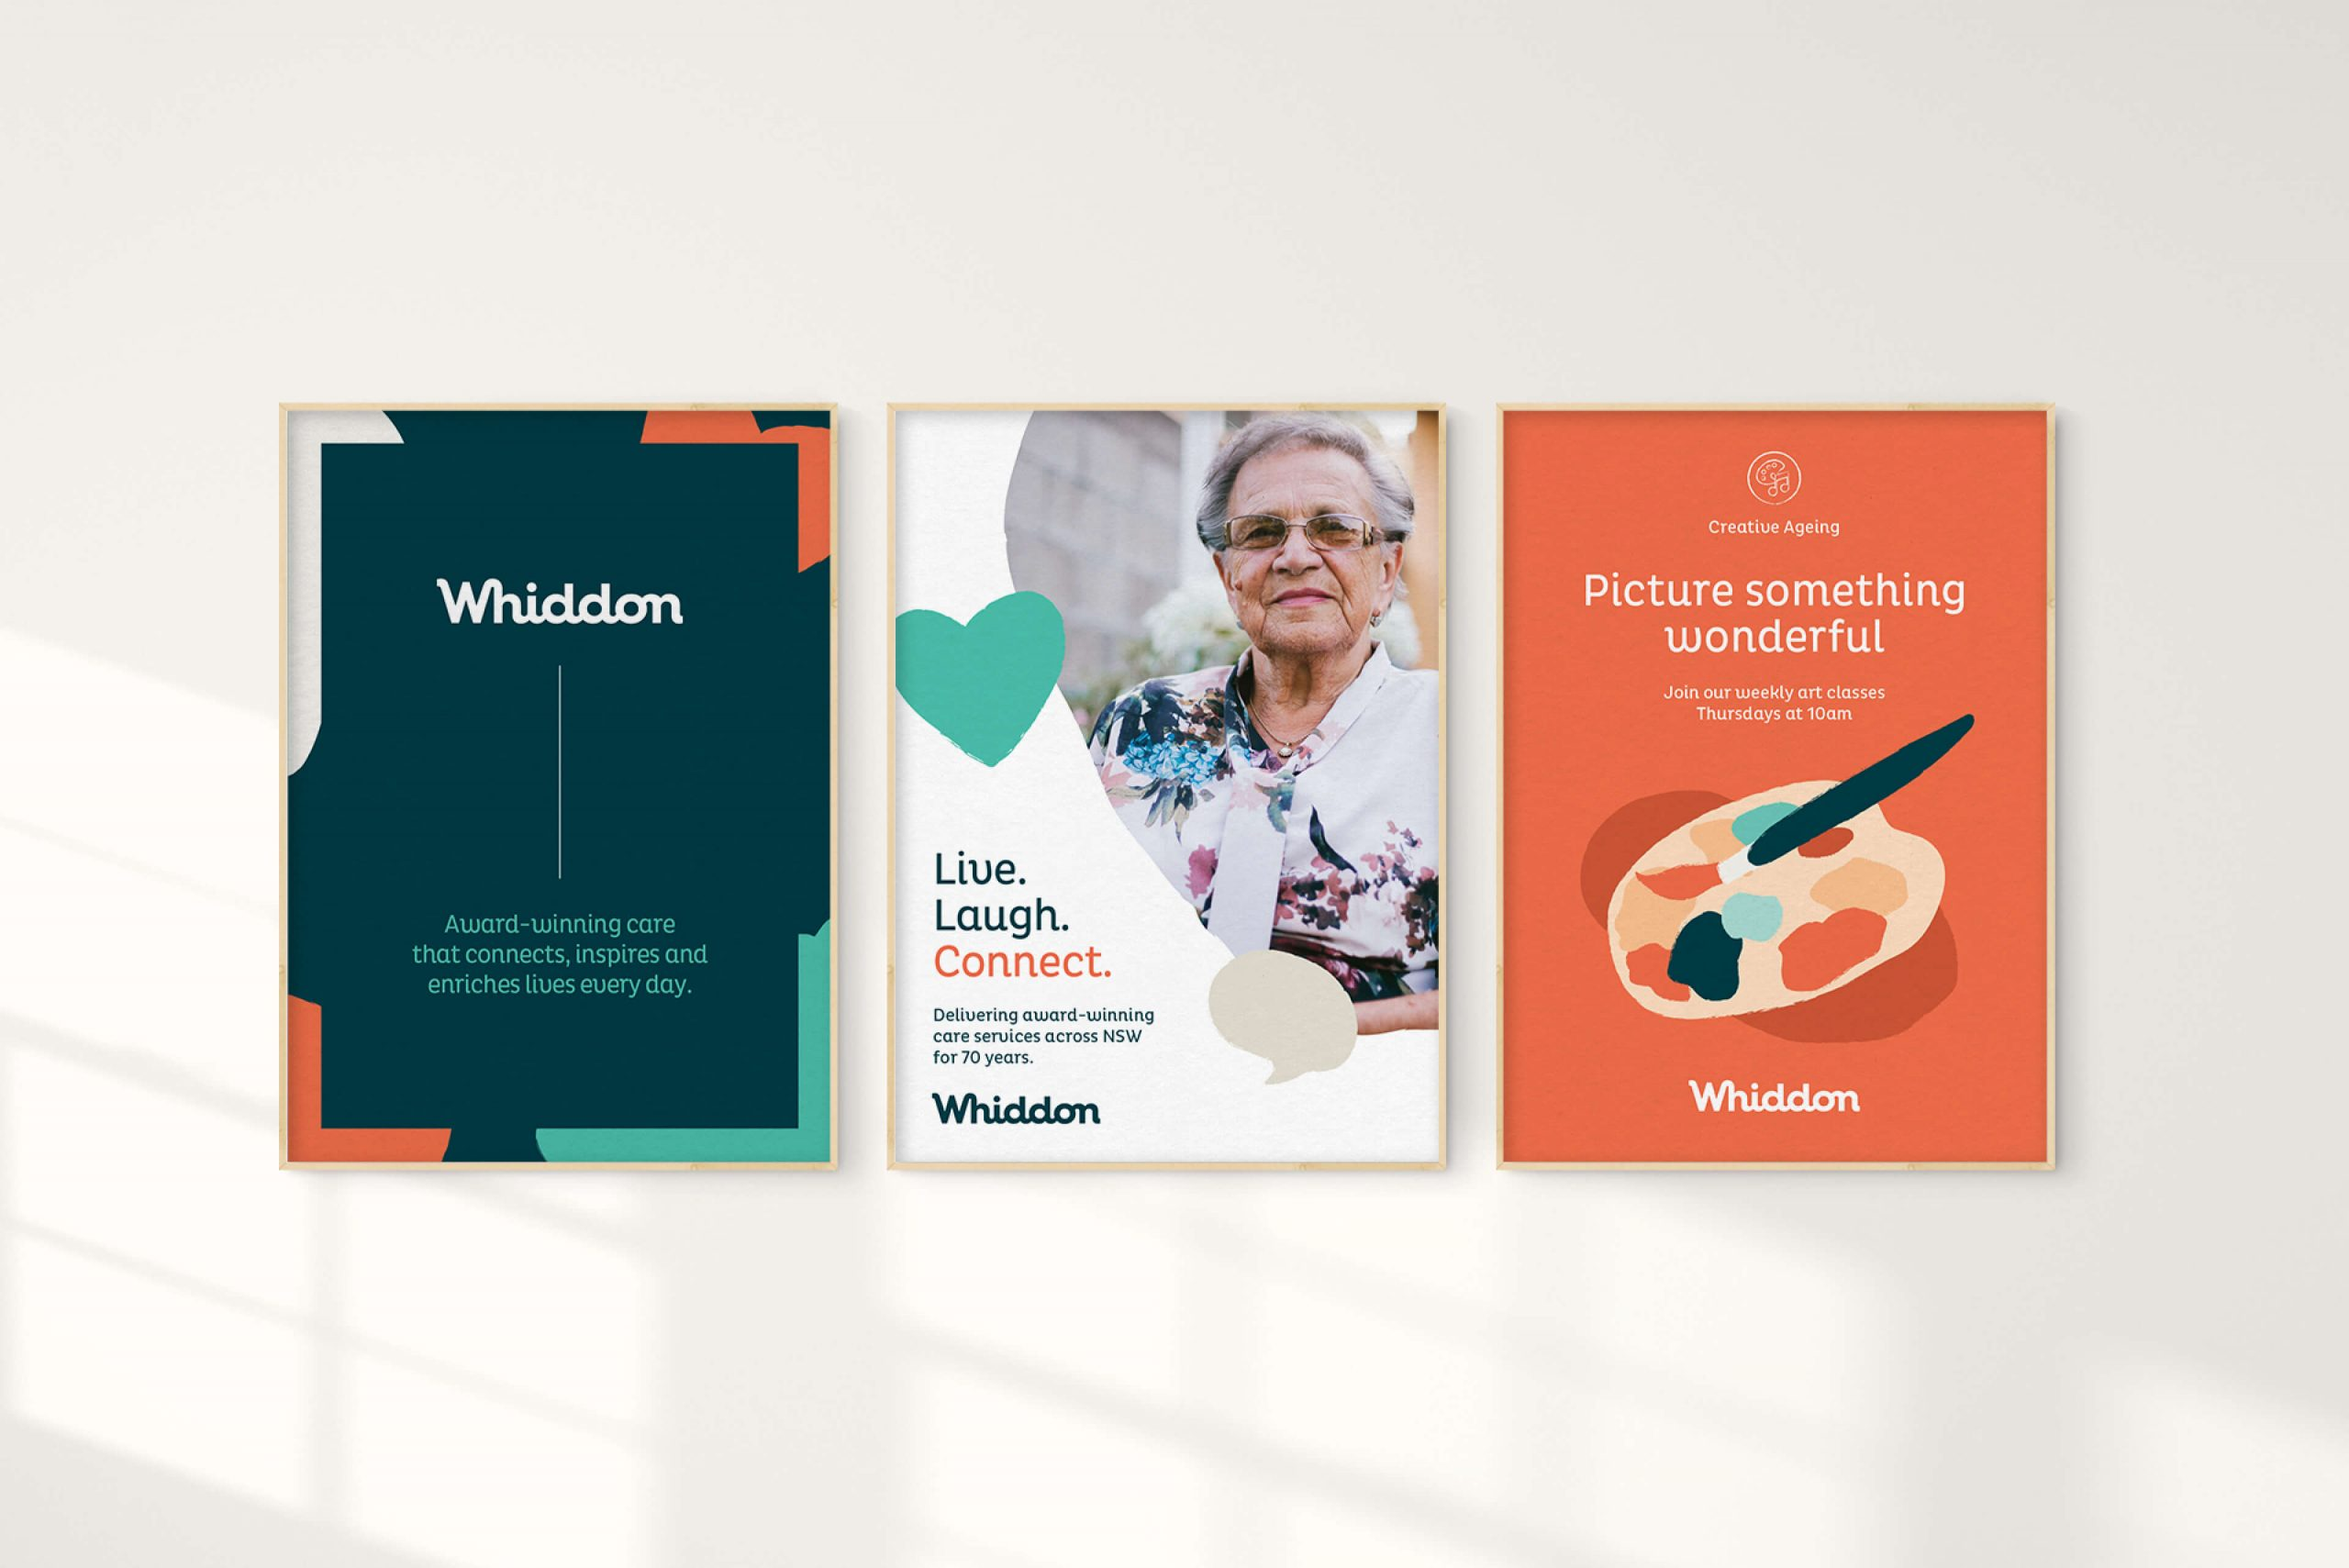 Whiddon Brand Refresh - Posters visualising the brand flexibiity in design execution